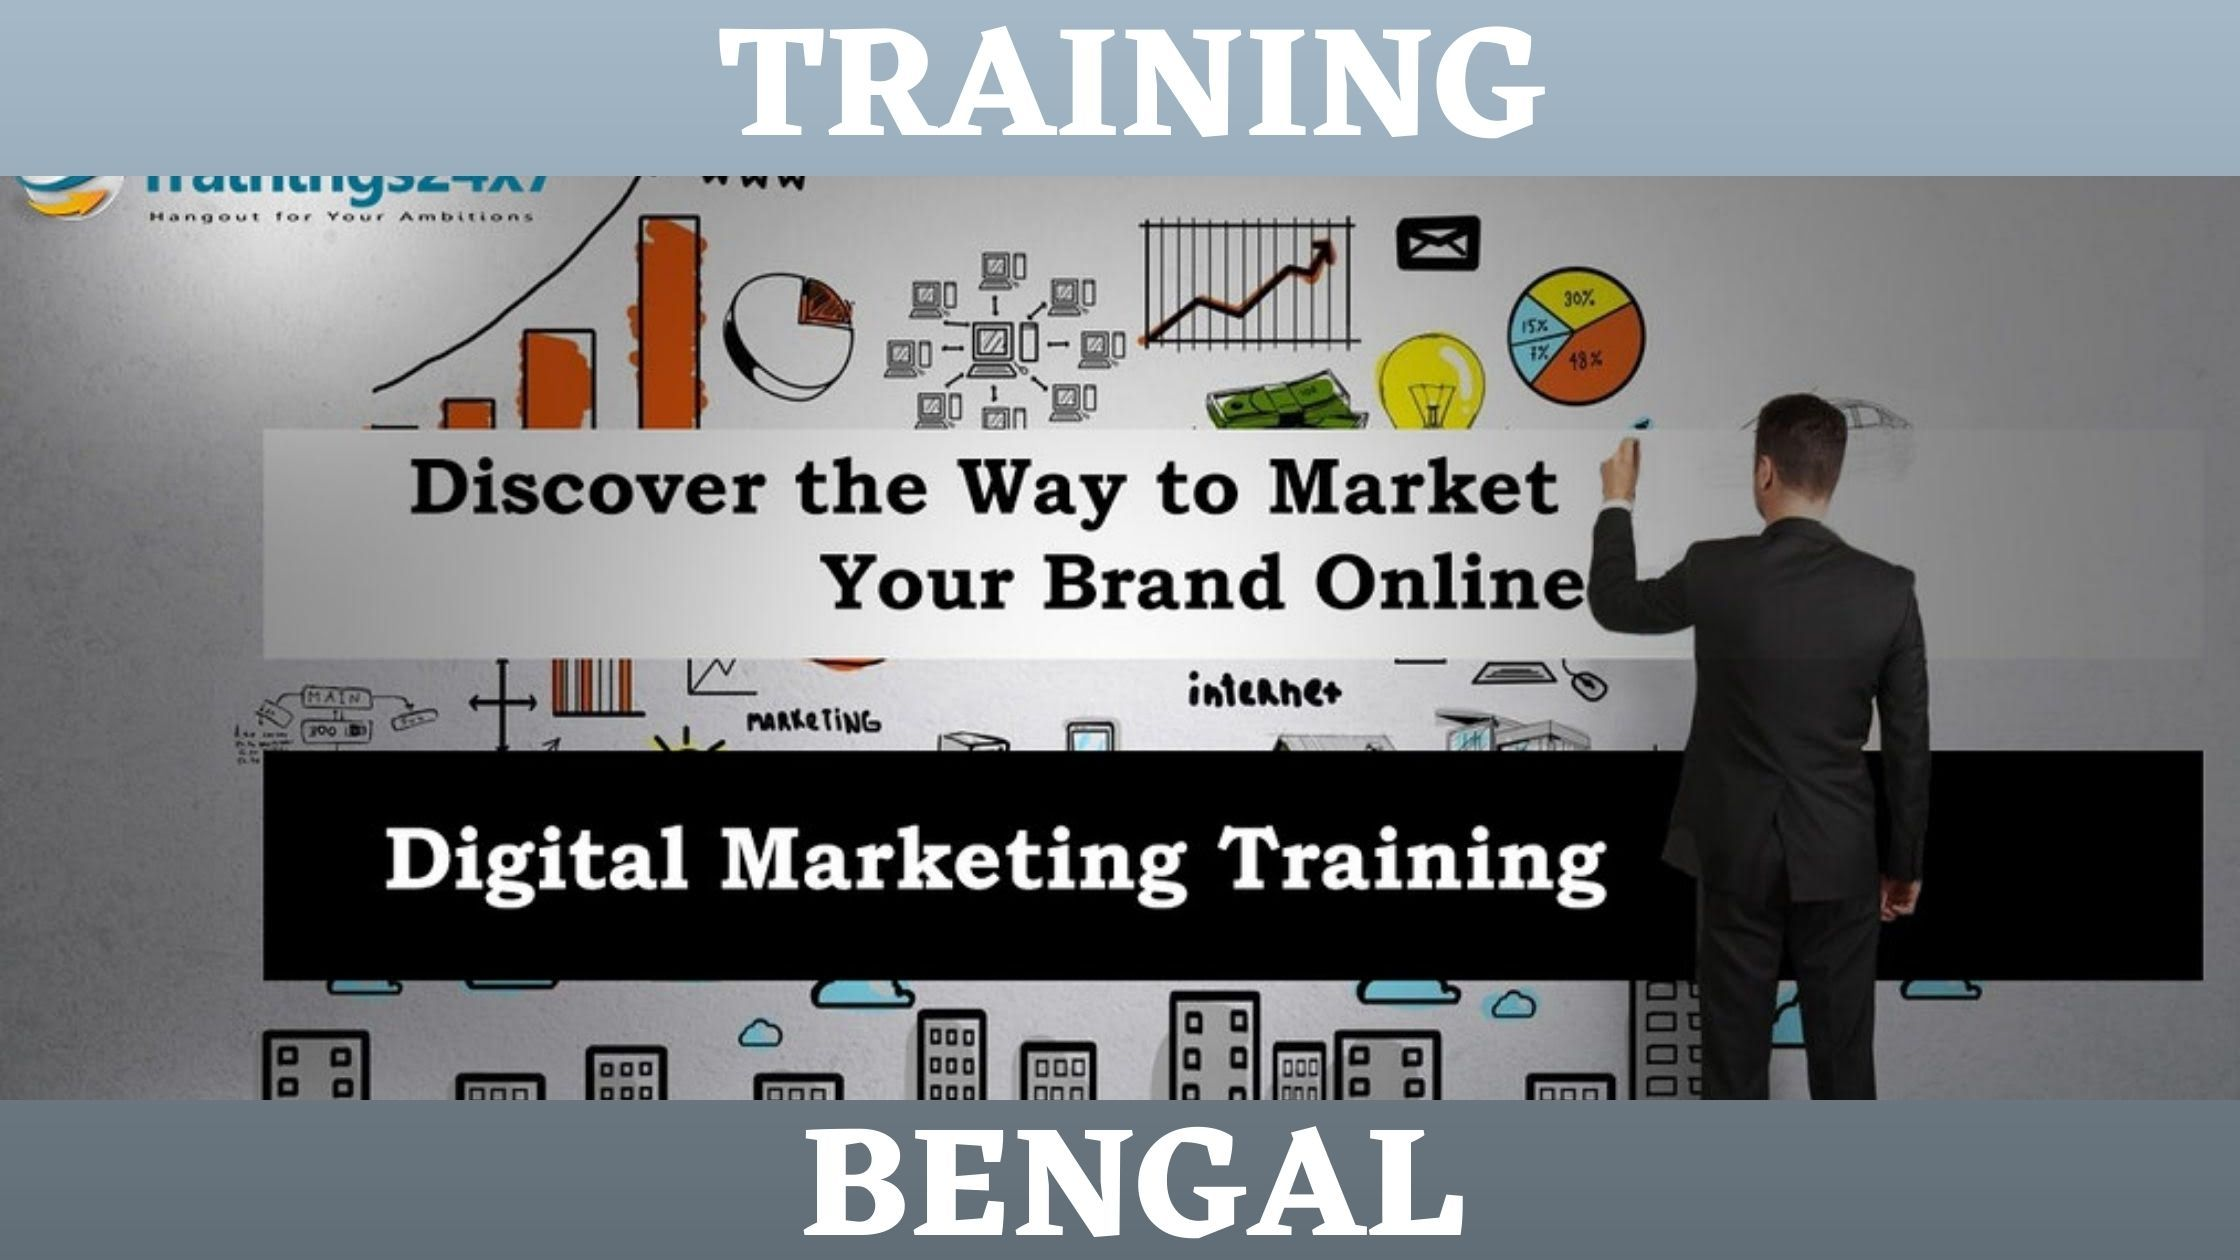 digital_marketing_in_bengal-background.jpeg